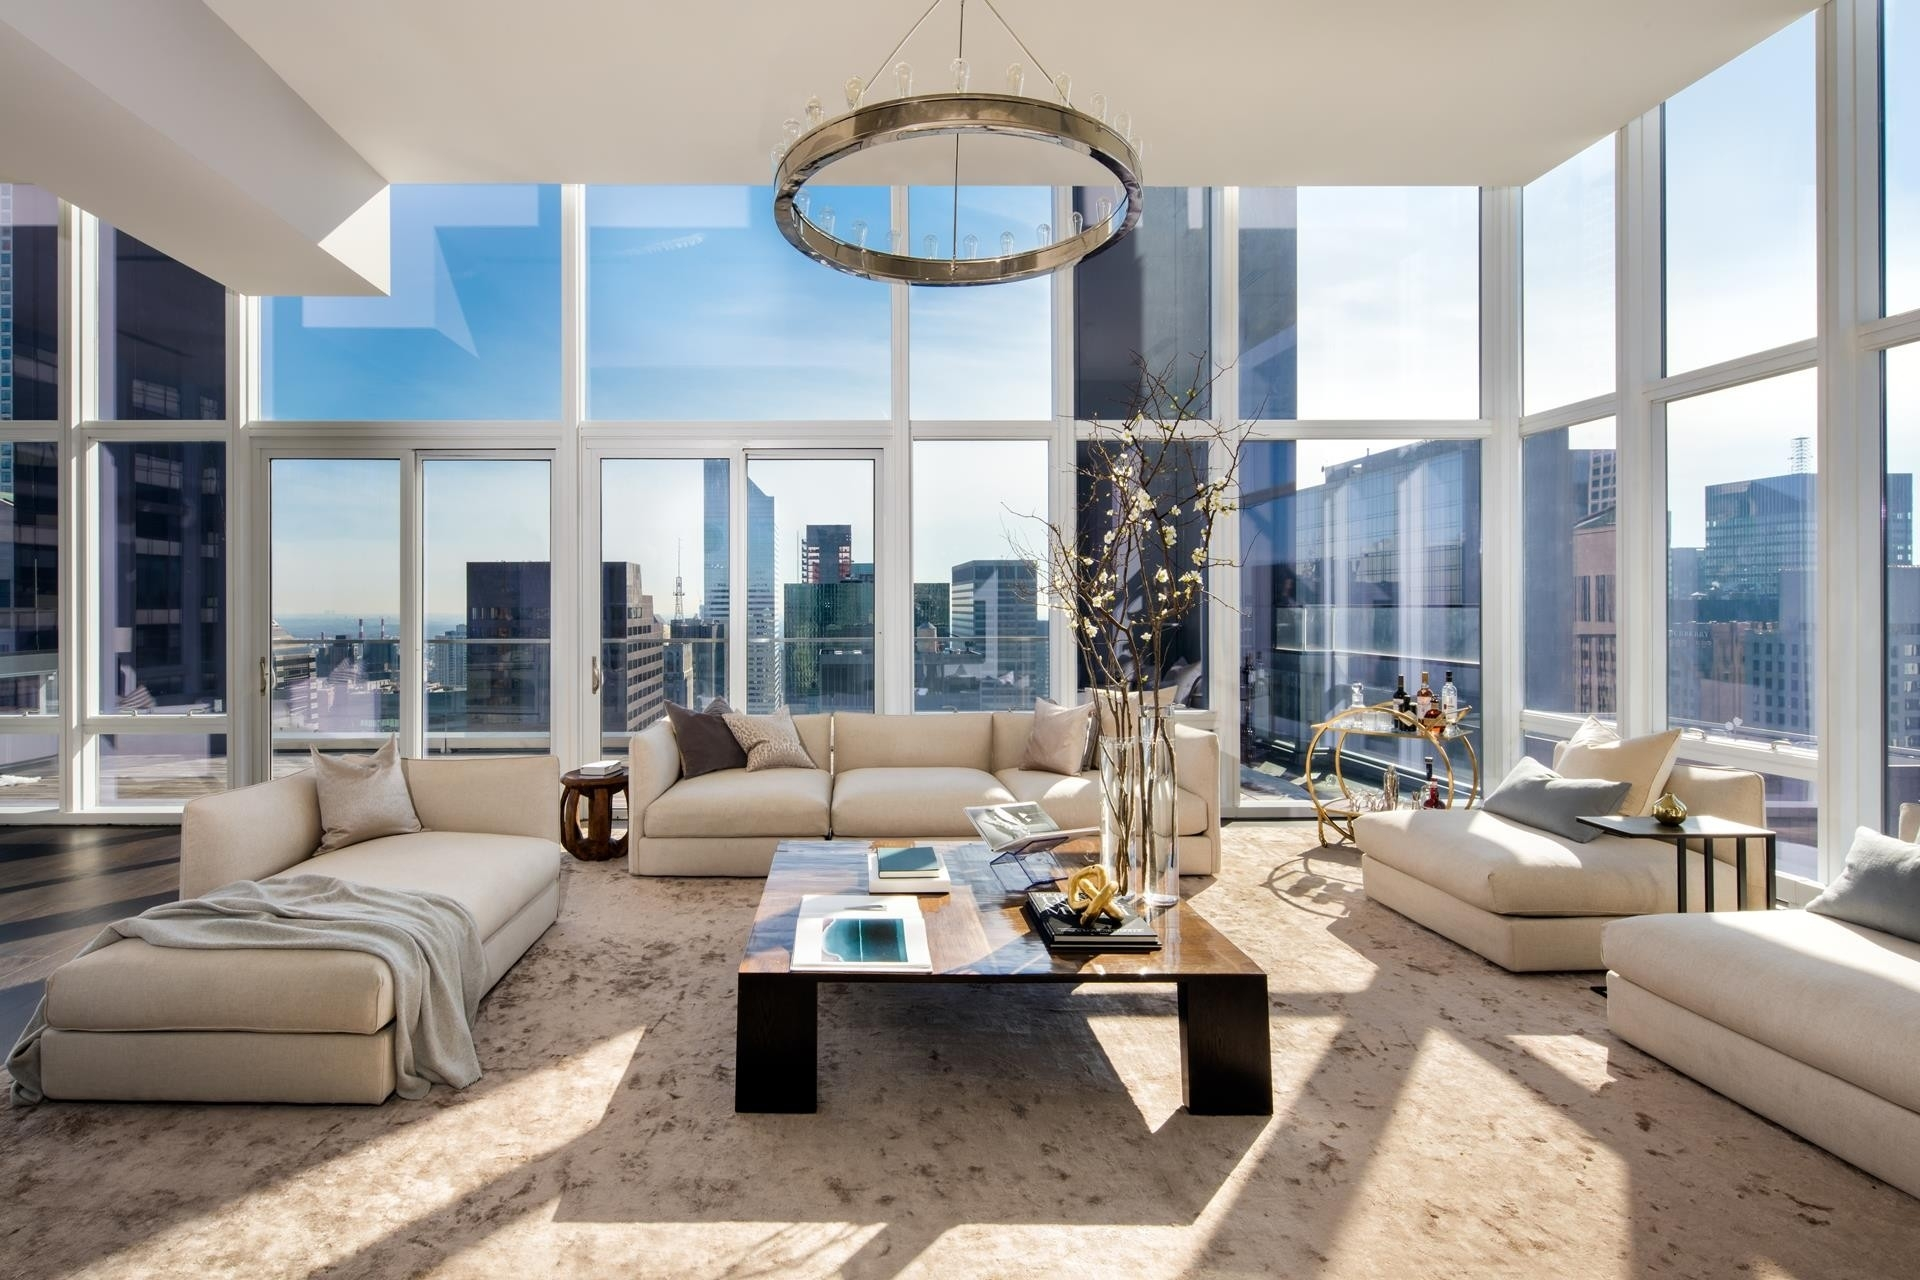 Condominium for Sale at BACCARAT HOTEL & RESIDENCES, 20 West 53rd St, PH48/49 Midtown West, New York, NY 10019